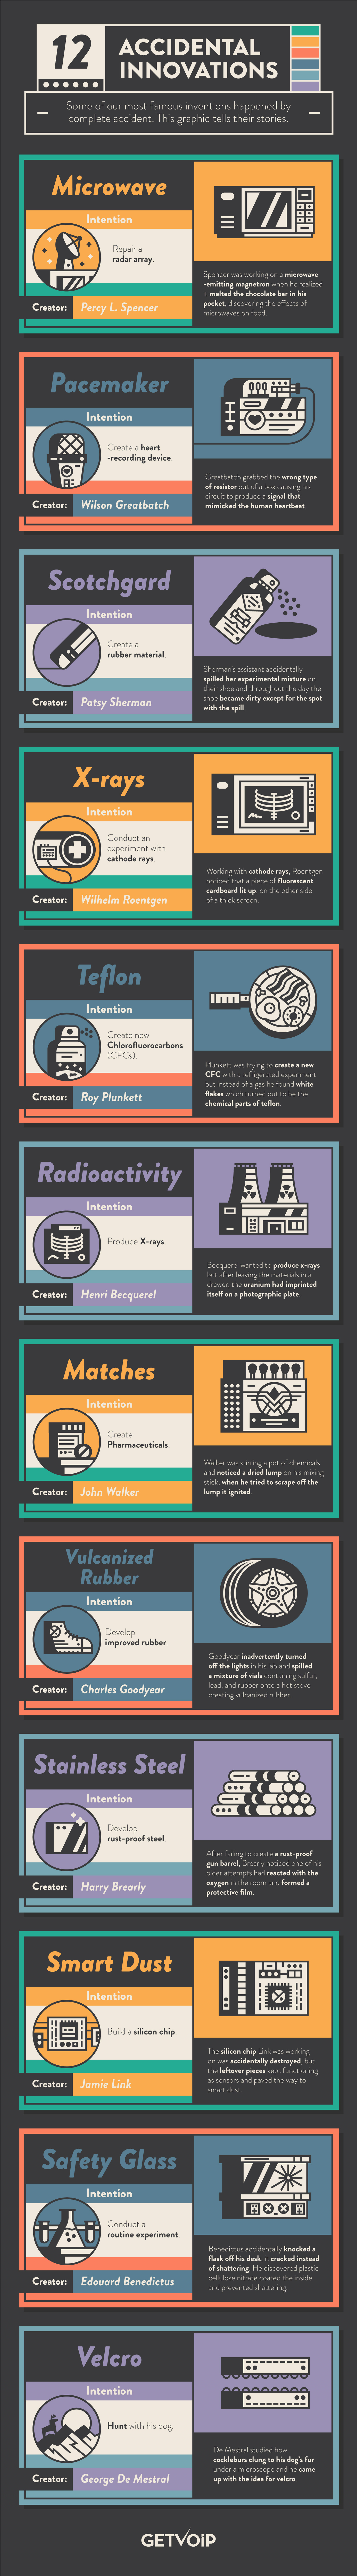 Famous Accidental Discoveries Throughout History [Infographic]